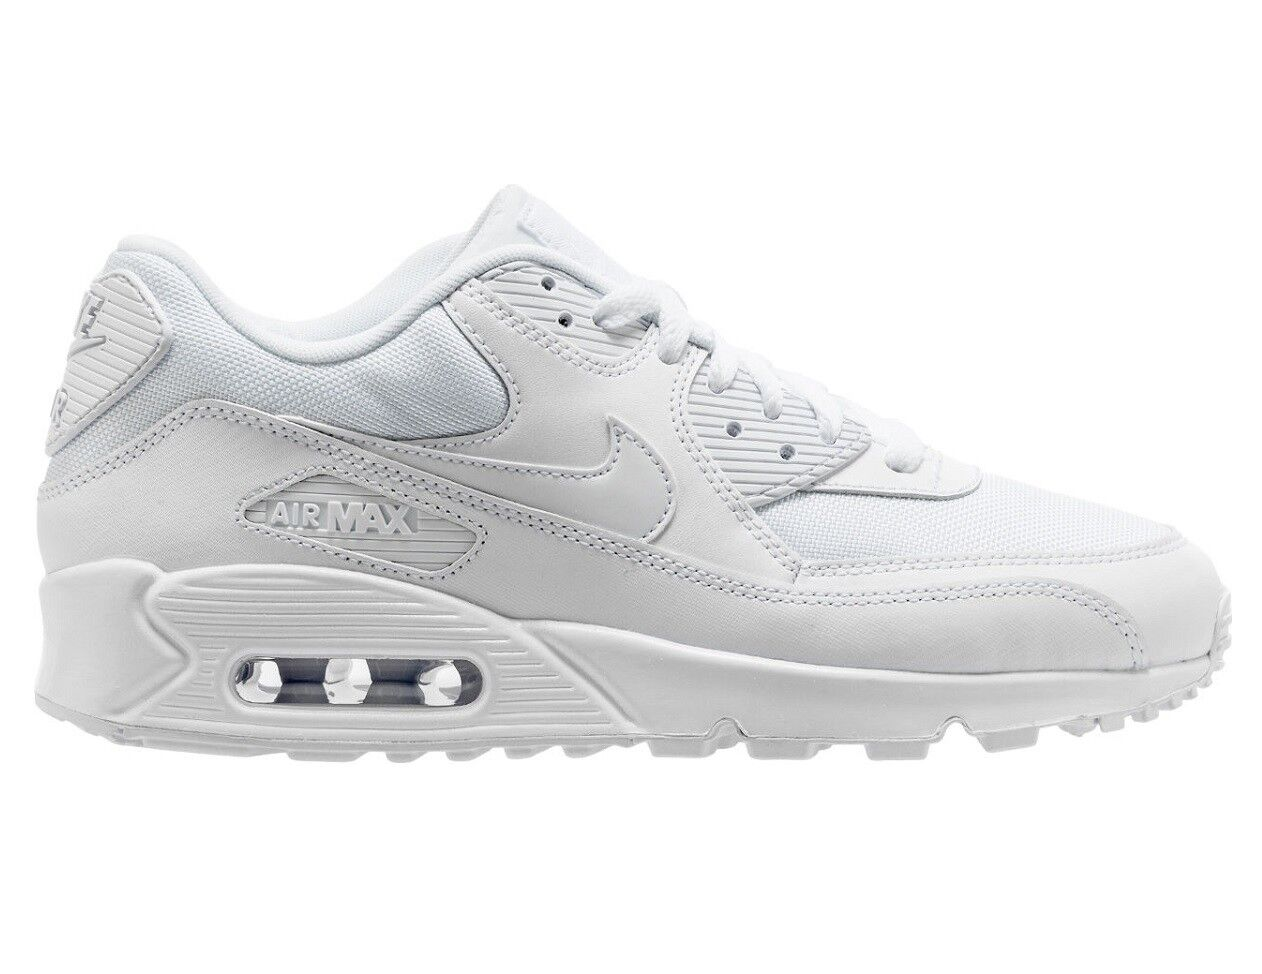 Nike Air Max 90 Essential Mens 537384-111 Triple White Running Shoes Size 9.5